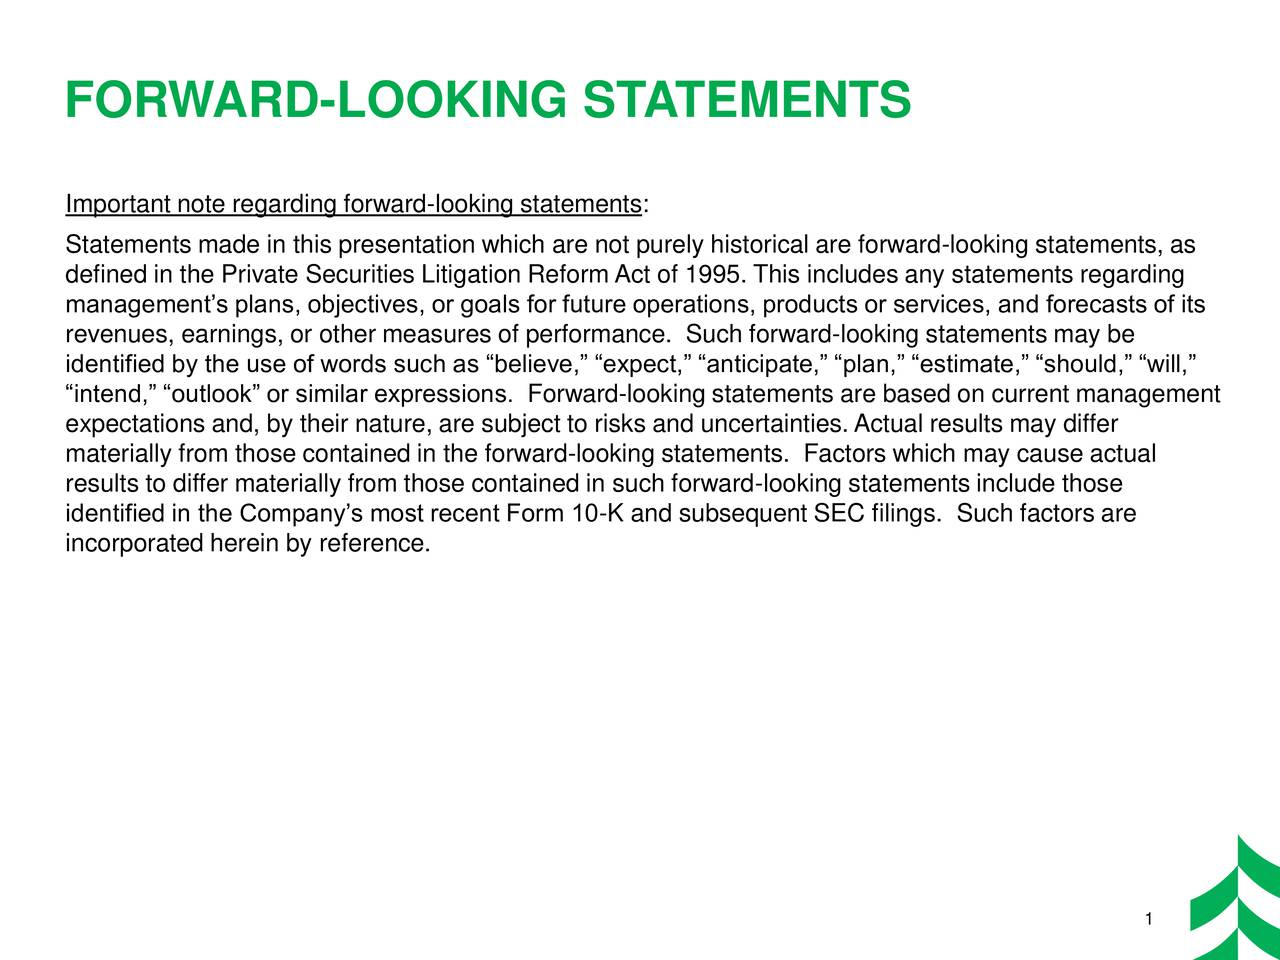 Important note regarding forward-looking statements: Statements made in this presentation which are not purely historical are forward-looking statements, as defined in the Private Securities Litigation Reform Act of 1995. This includes any statements regarding managements plans, objectives, or goals for future operations, products or services, and forecasts of its revenues, earnings, or other measures of performance. Such forward-looking statements may be identified by the use of words such as believe, expect, anticipate, plan, estimate, should, will, intend, outlook or similar expressions. Forward-looking statements are based on current management expectations and, by their nature, are subject to risks and uncertainties.Actual results may differ materially from those contained in the forward-looking statements. Factors which may cause actual results to differ materially from those contained in such forward-looking statements include those identified in the Companys most recent Form 10-K and subsequent SEC filings. Such factors are incorporated herein by reference. 1